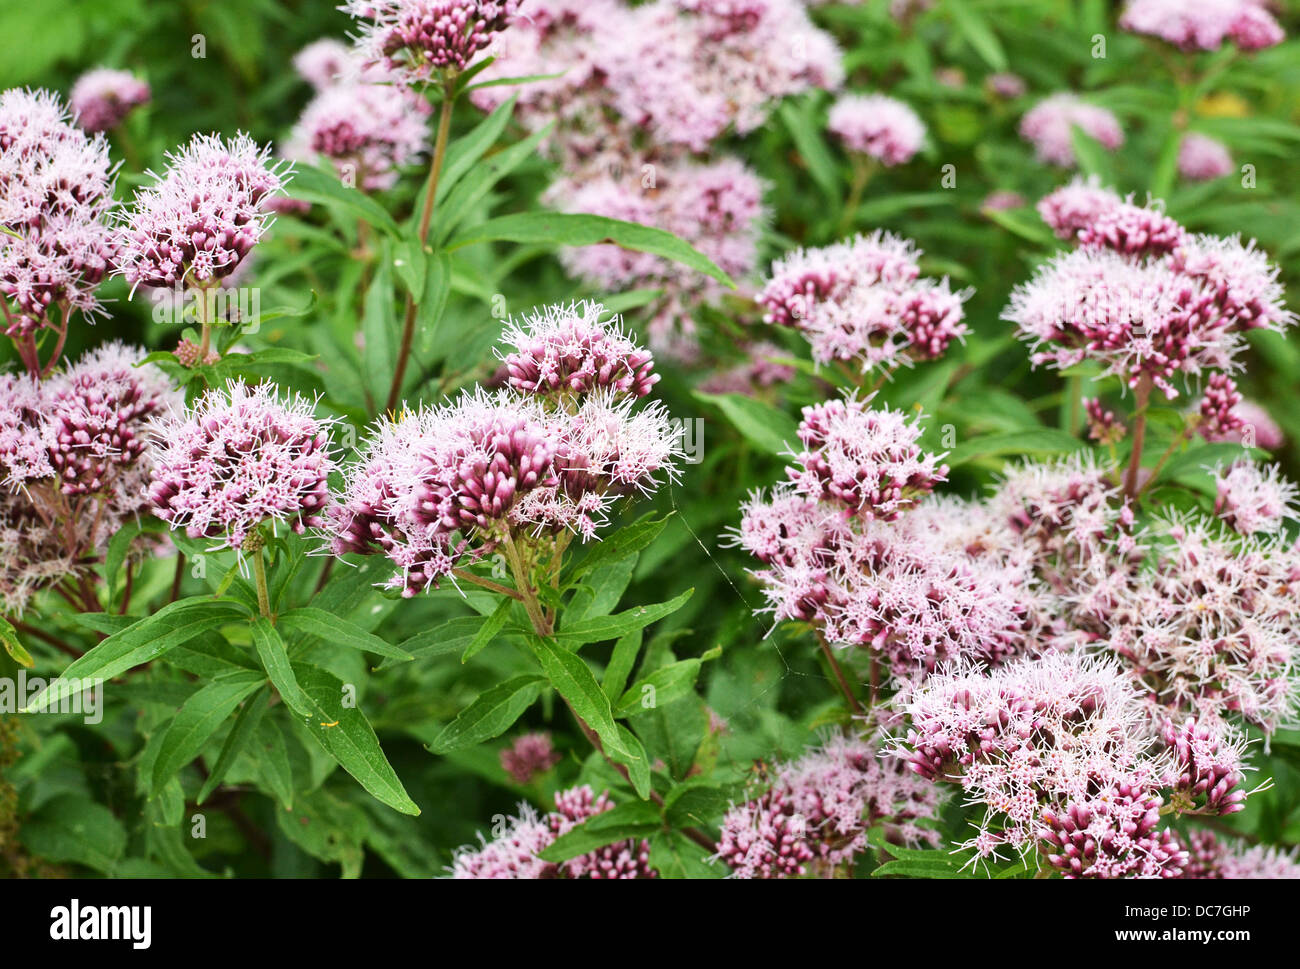 Valerian flowers in bloom in close up. - Stock Image